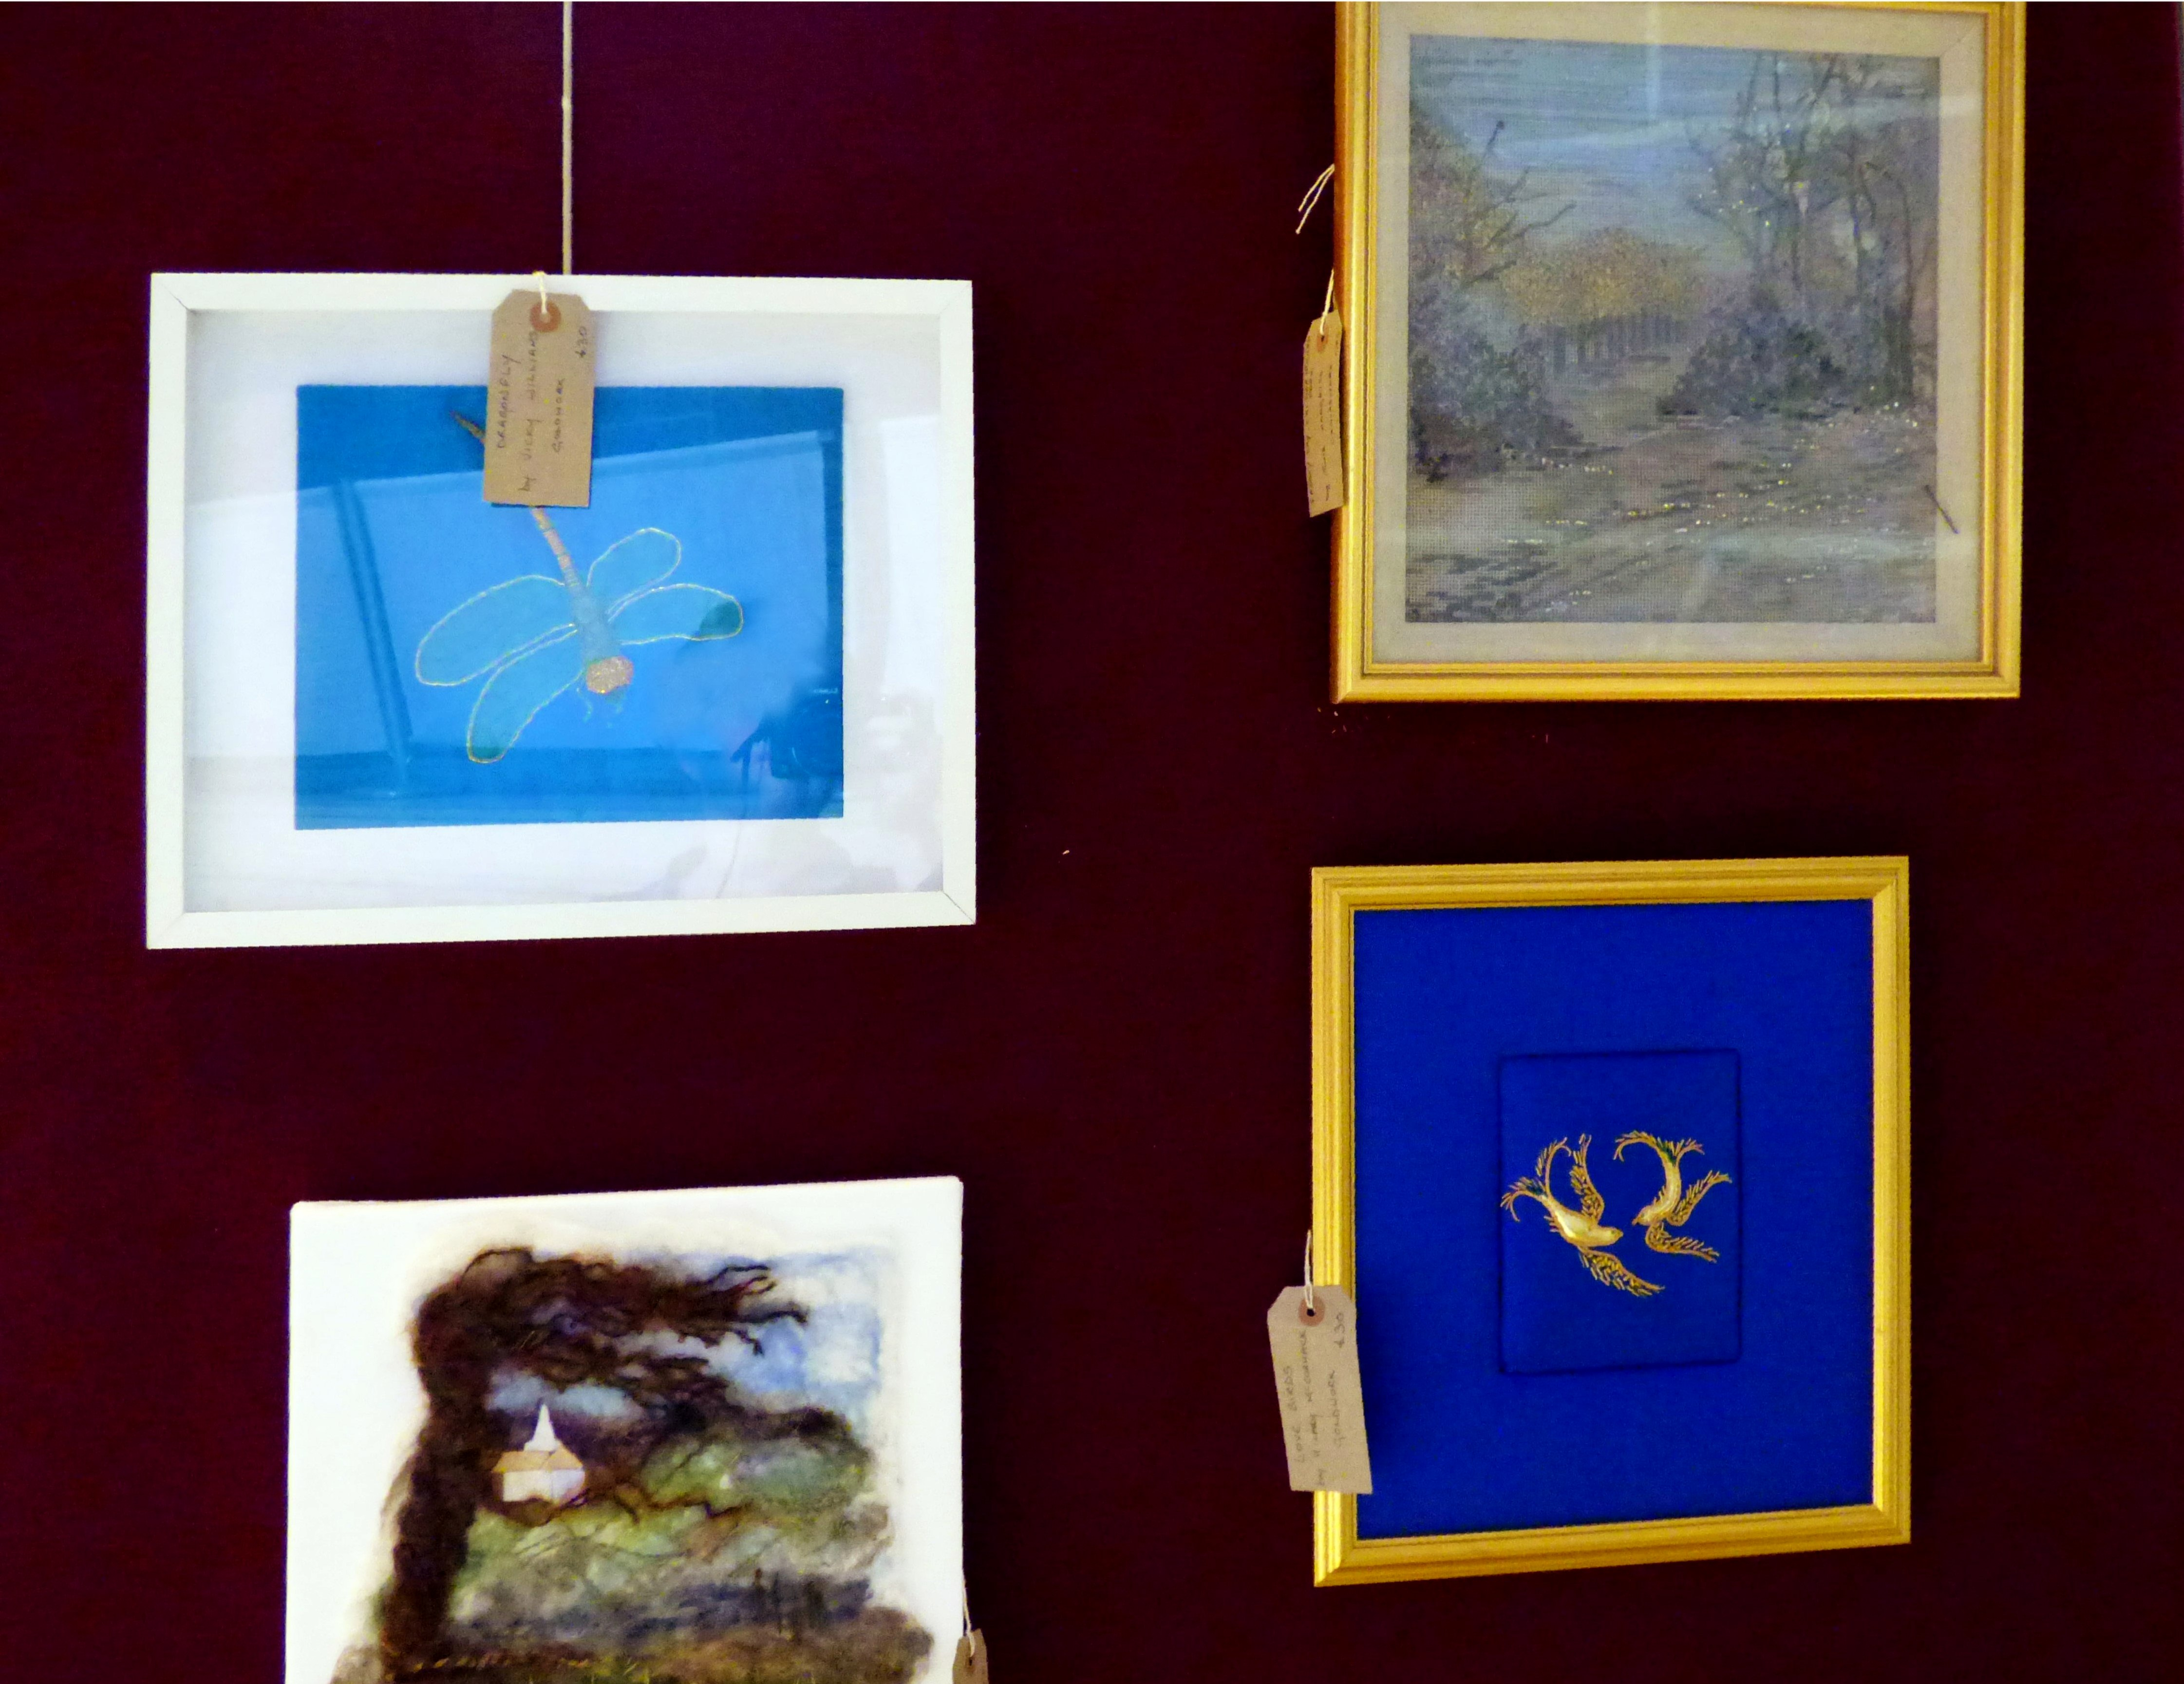 DRAGONFLY by Vicky Williams, FROSTY DAY, CALDERSTONES PARK by June Hodgkiss, TOWARDS THE FELLS by Isobel HOGG and THE LOVE BIRDS by Hilary McCormack at 60 Glorious Years exhibition 2016